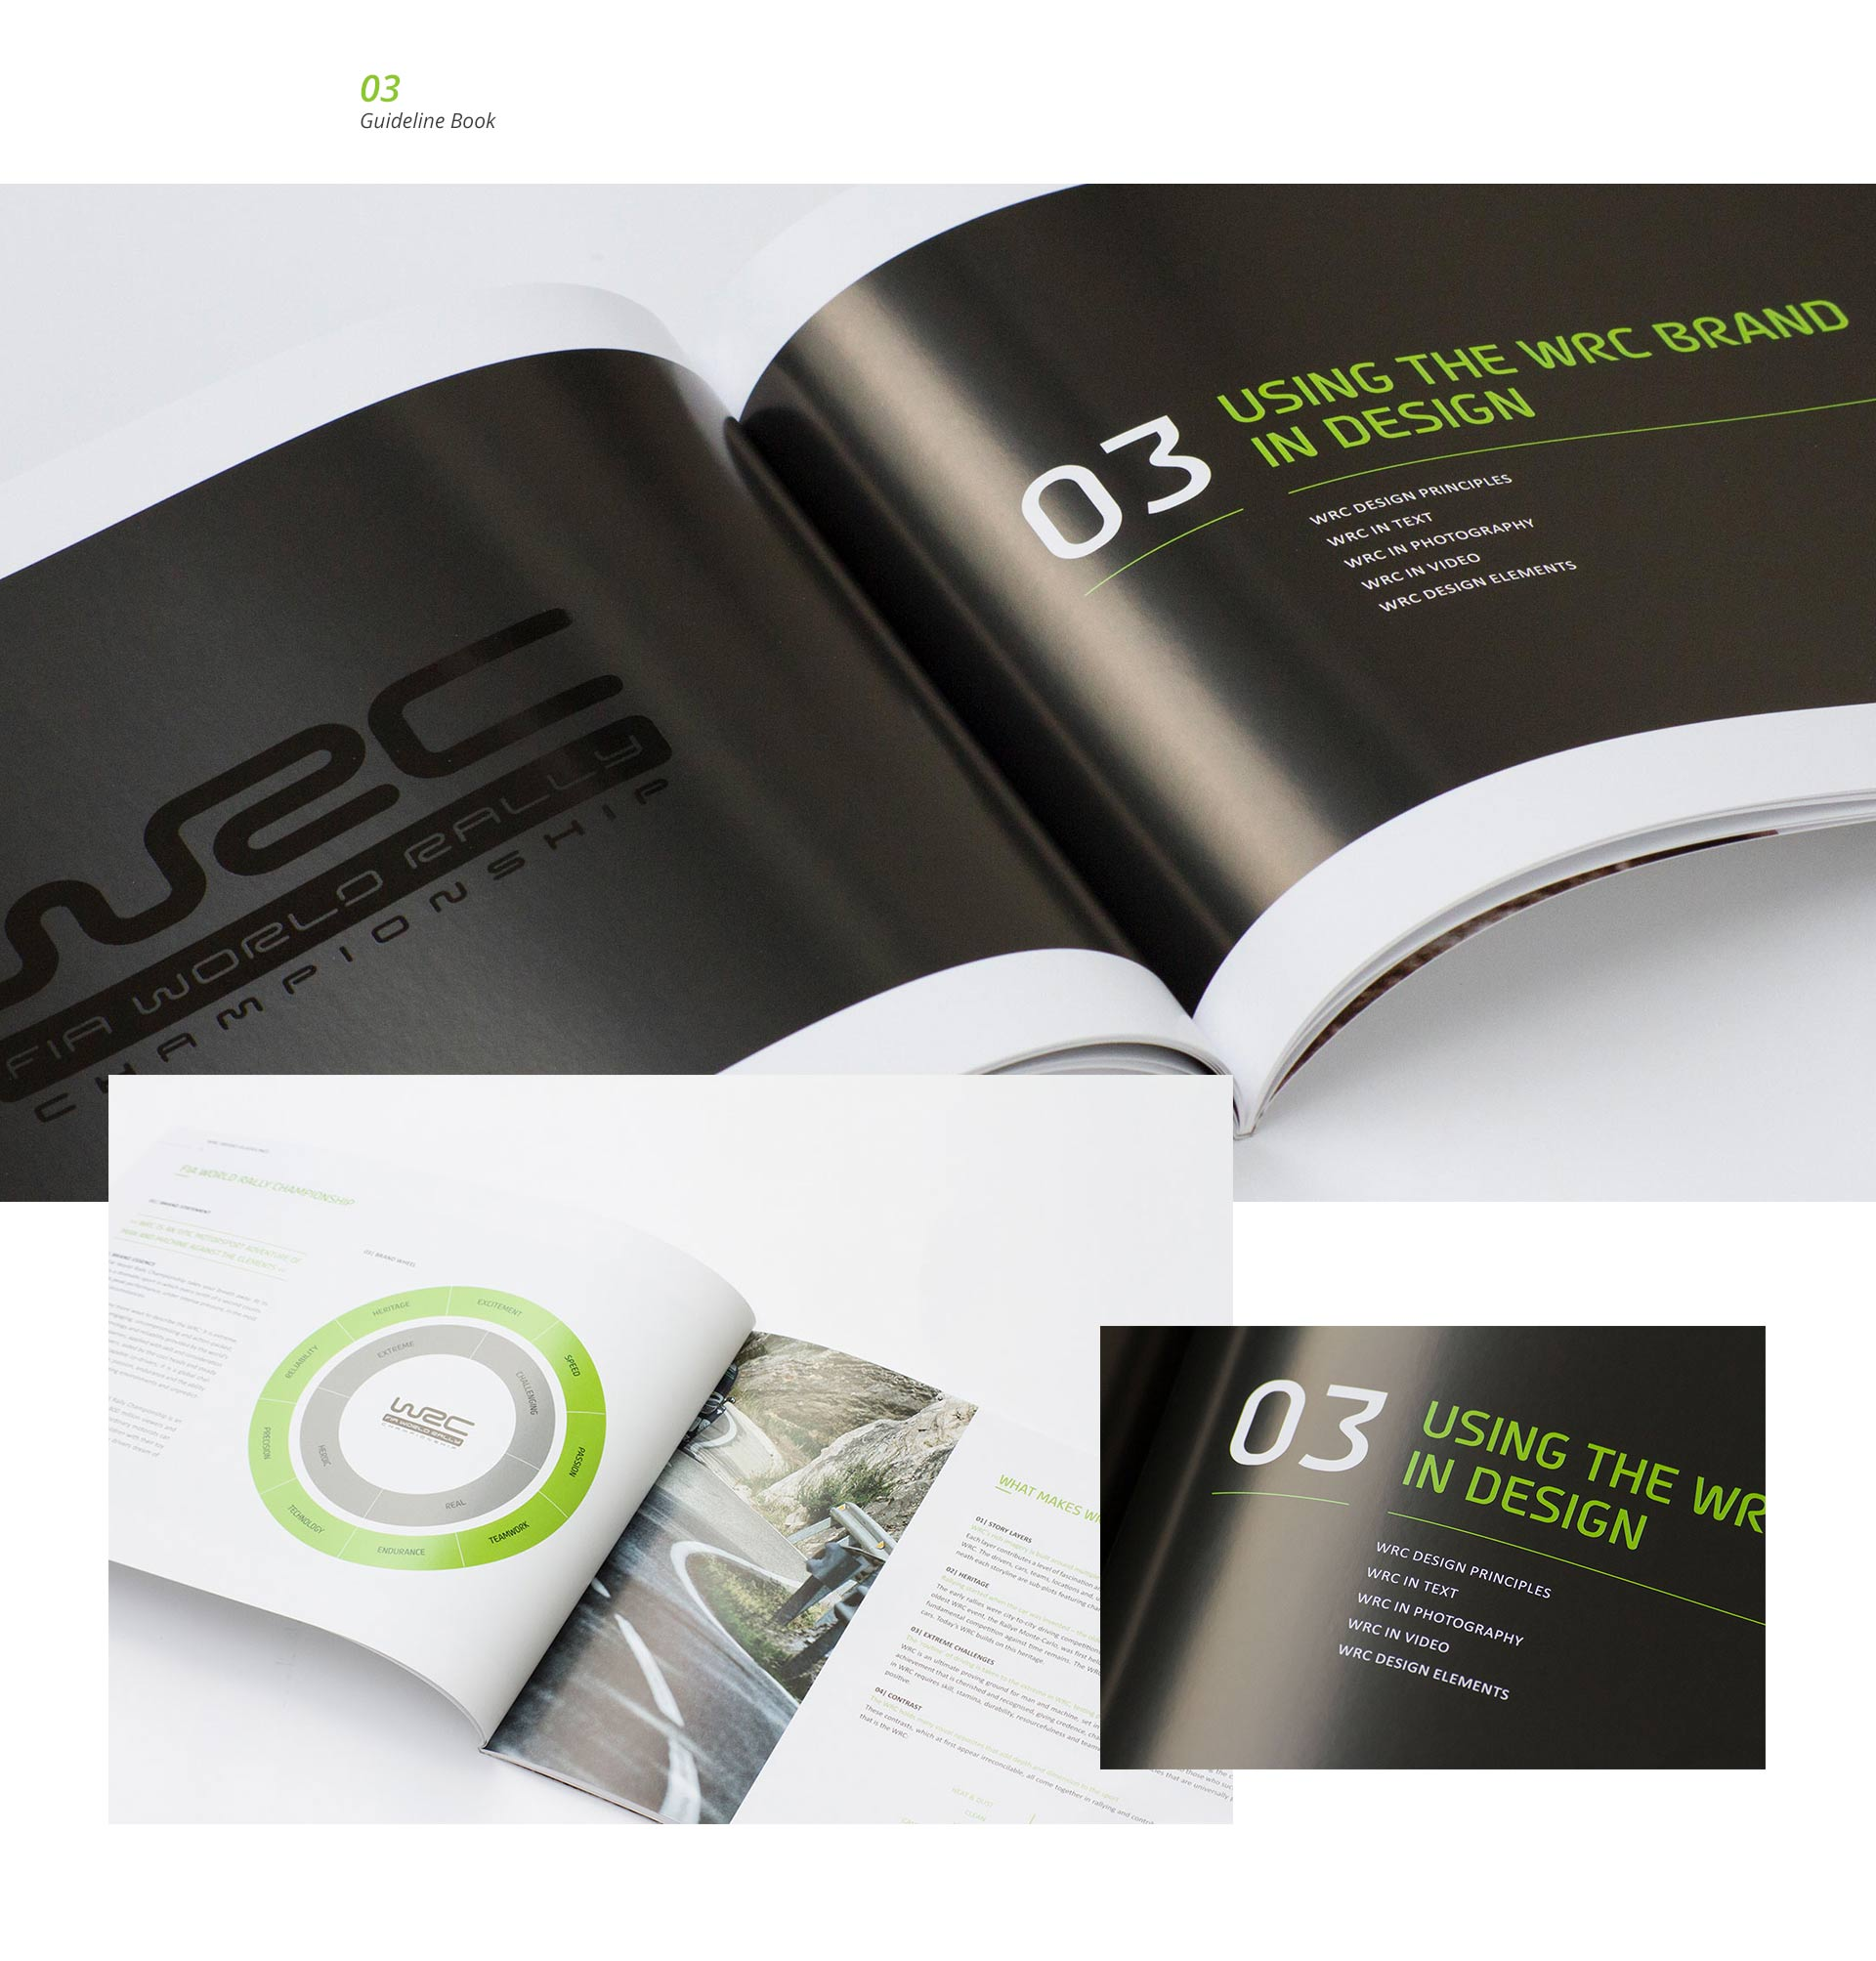 EAZEE Corporate Design WRC Design Guidelines